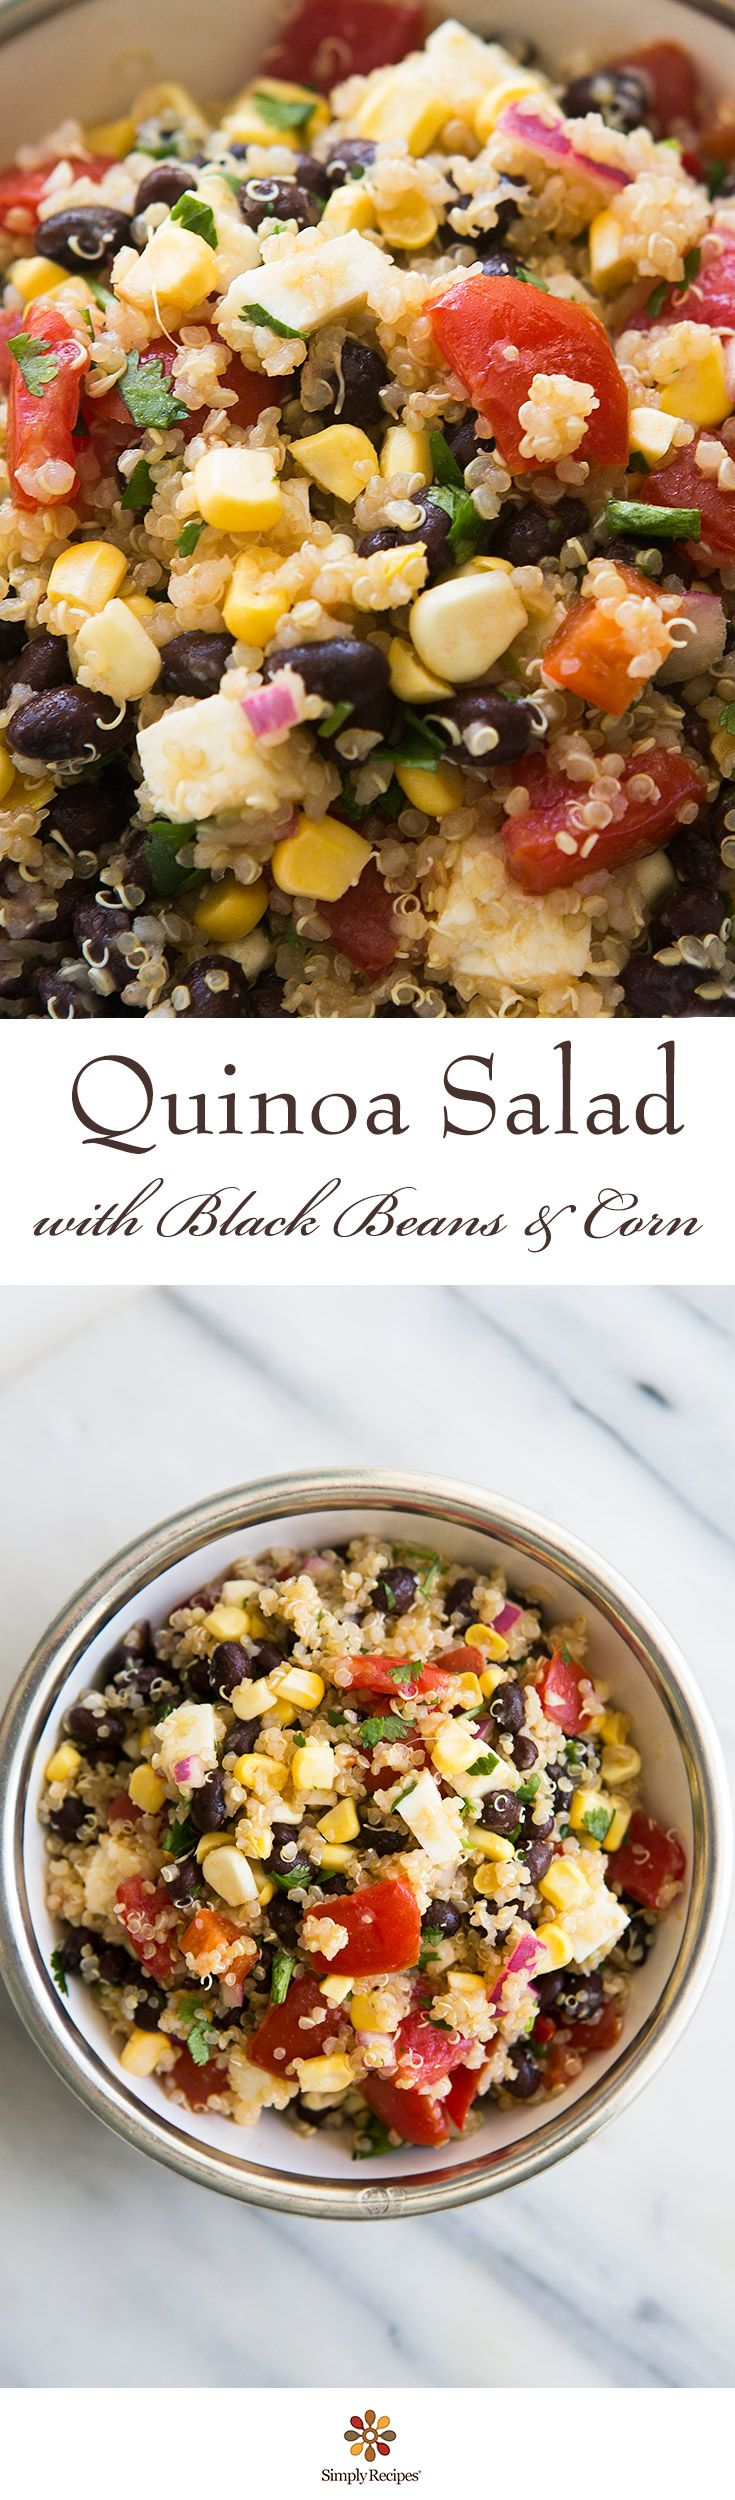 Mexican Quinoa Salad! WIth black beans, corn, fresh tomatoes, jalapeños, farmers cheese, lime juice, and cilantro. Easy, healthy, and delicious!!! ~ SimplyRecipes.com